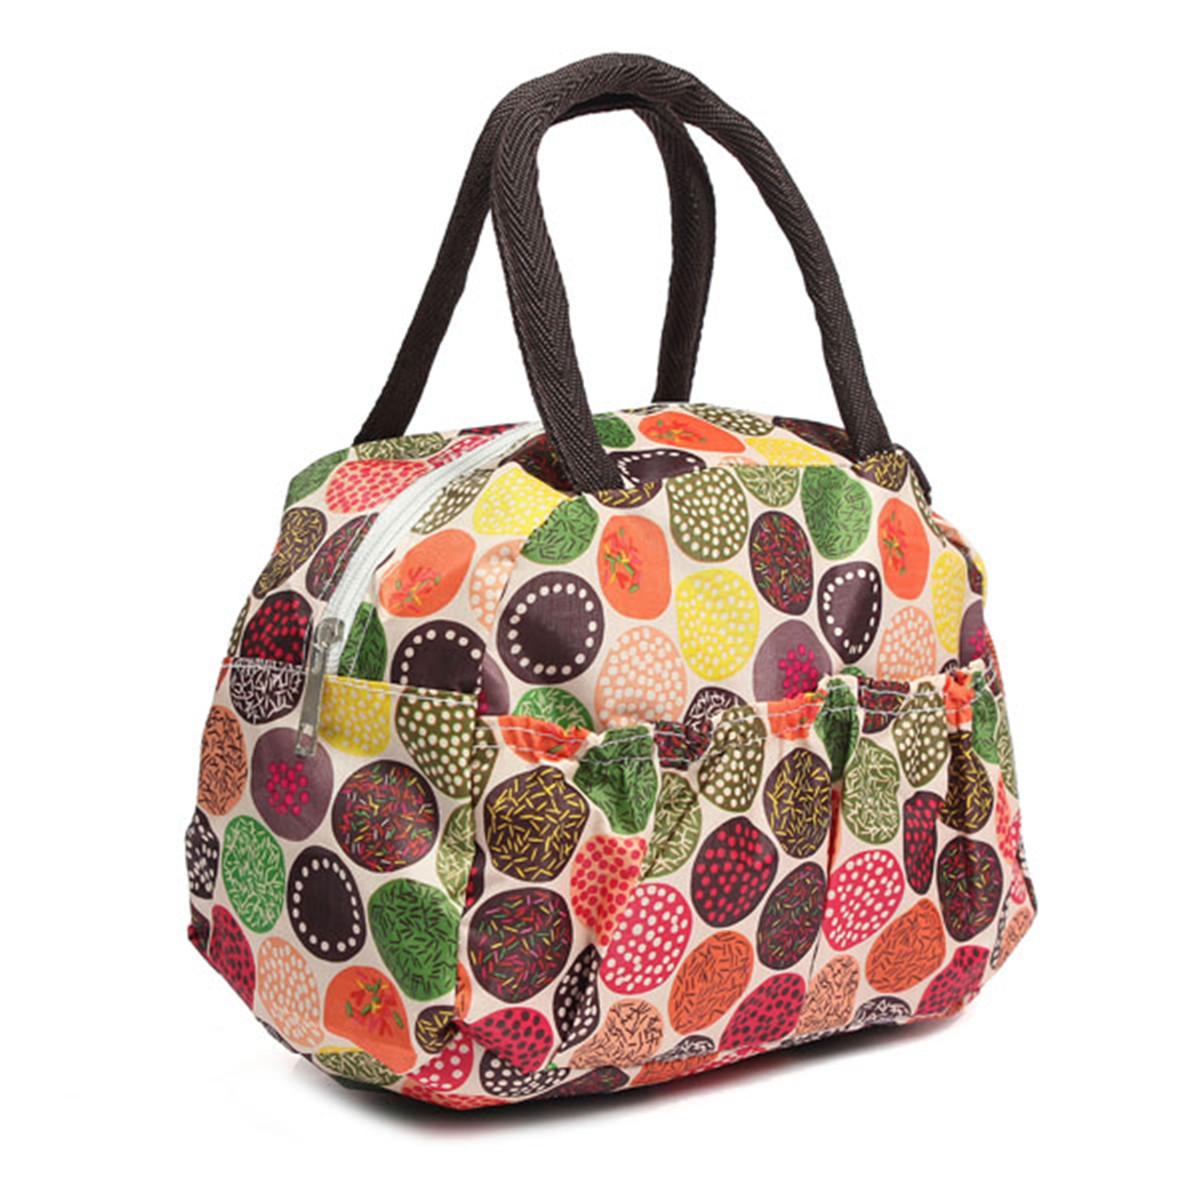 Portable Bento Lunch Box Bag Insulated Thermal Waterproof